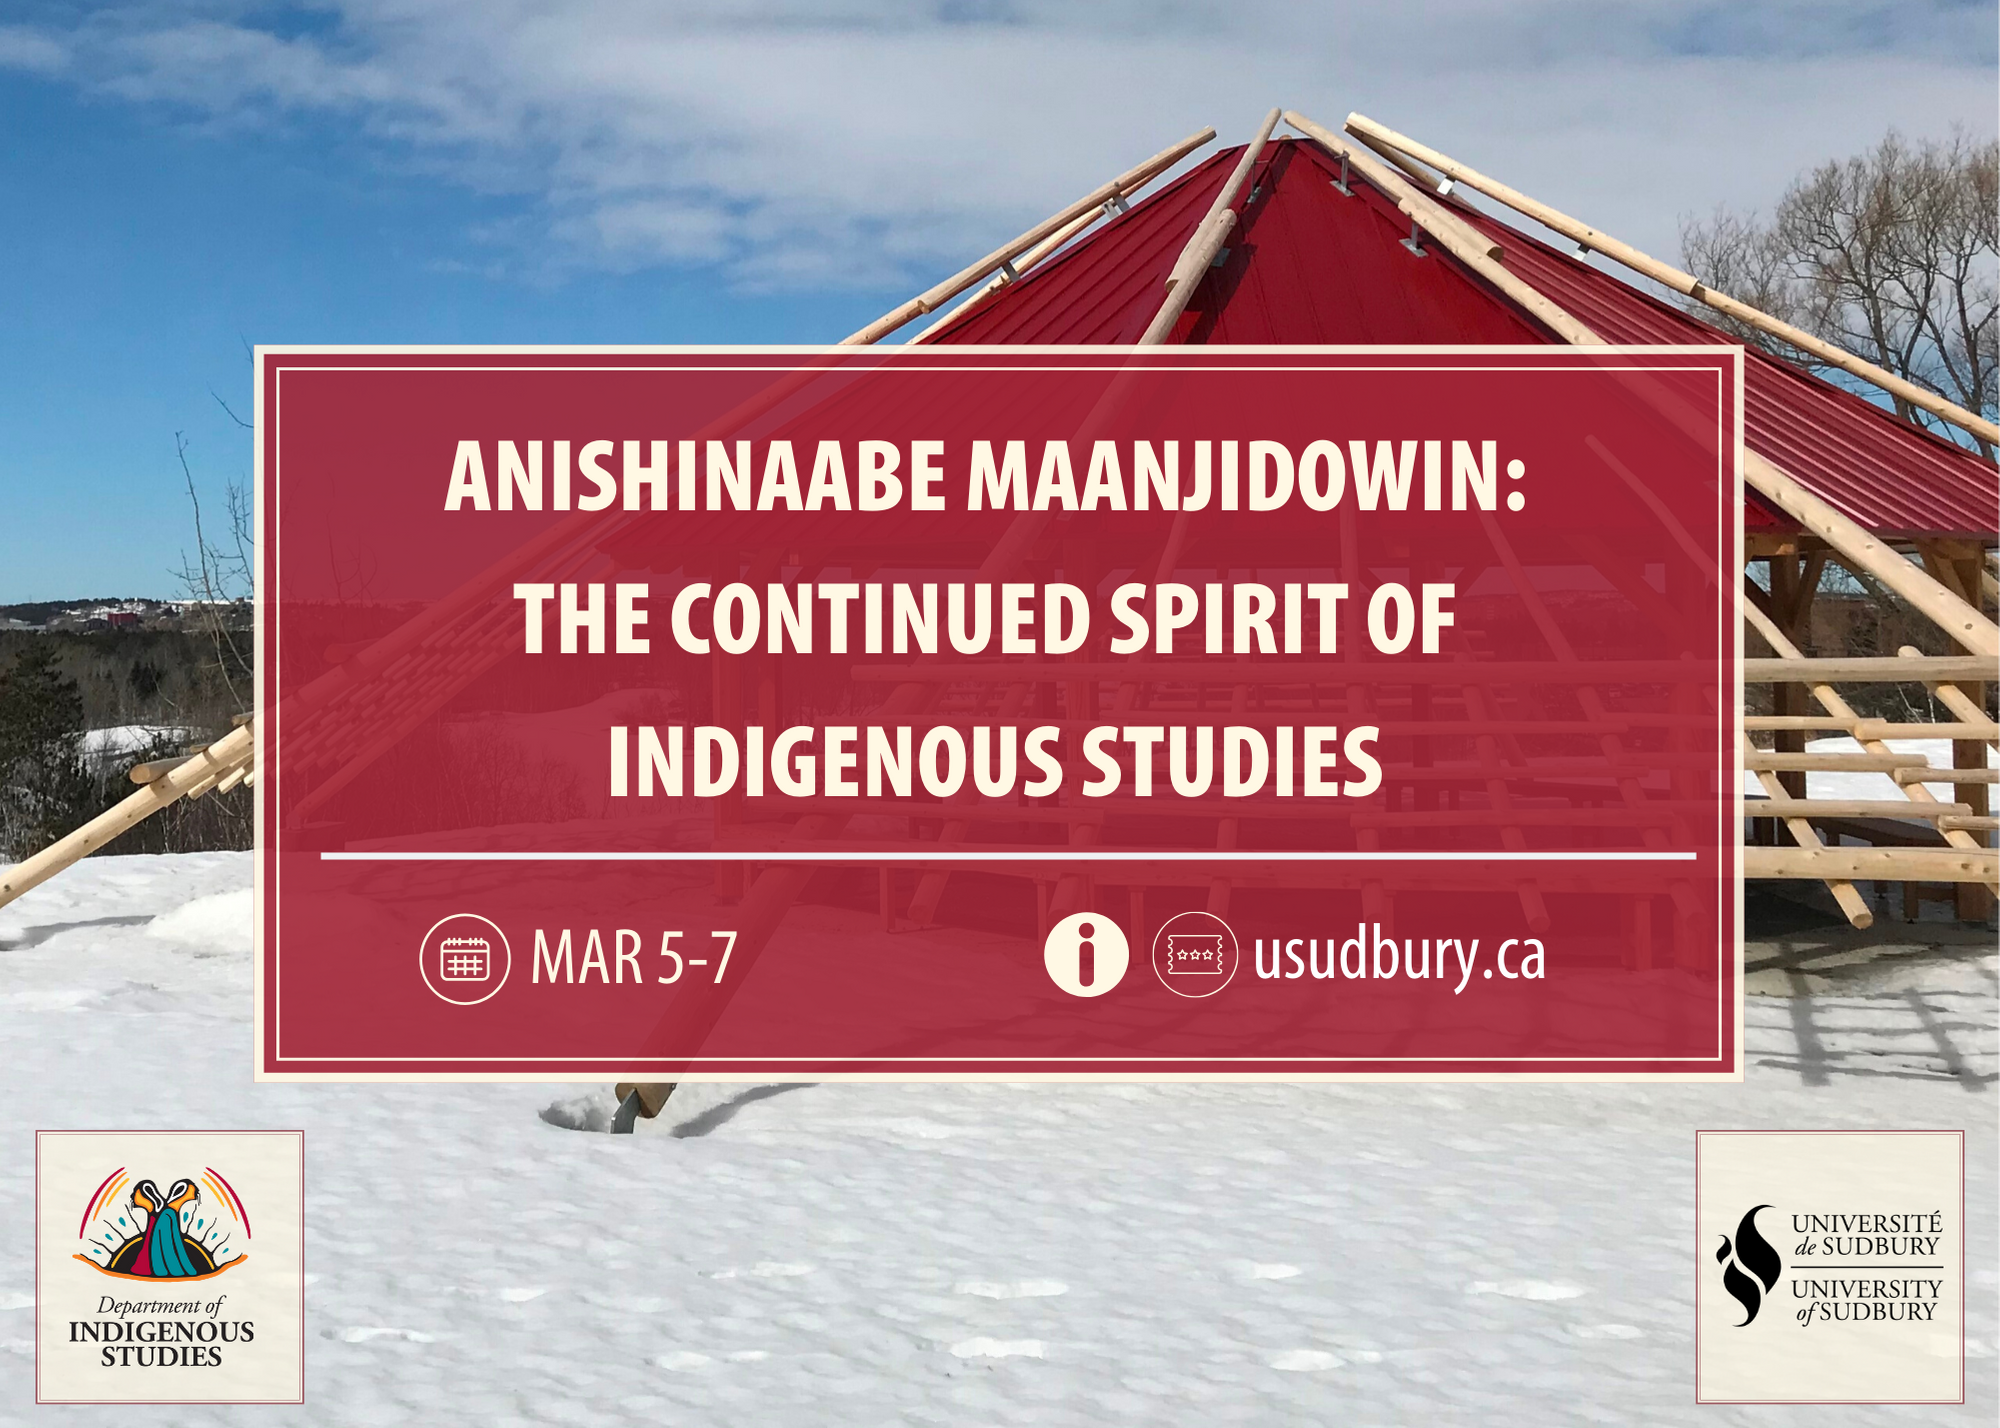 ANISHINAABE MAANJIDOWIN THE CONTINUED SPIRIT OF INDIGENOUS STUDIES card